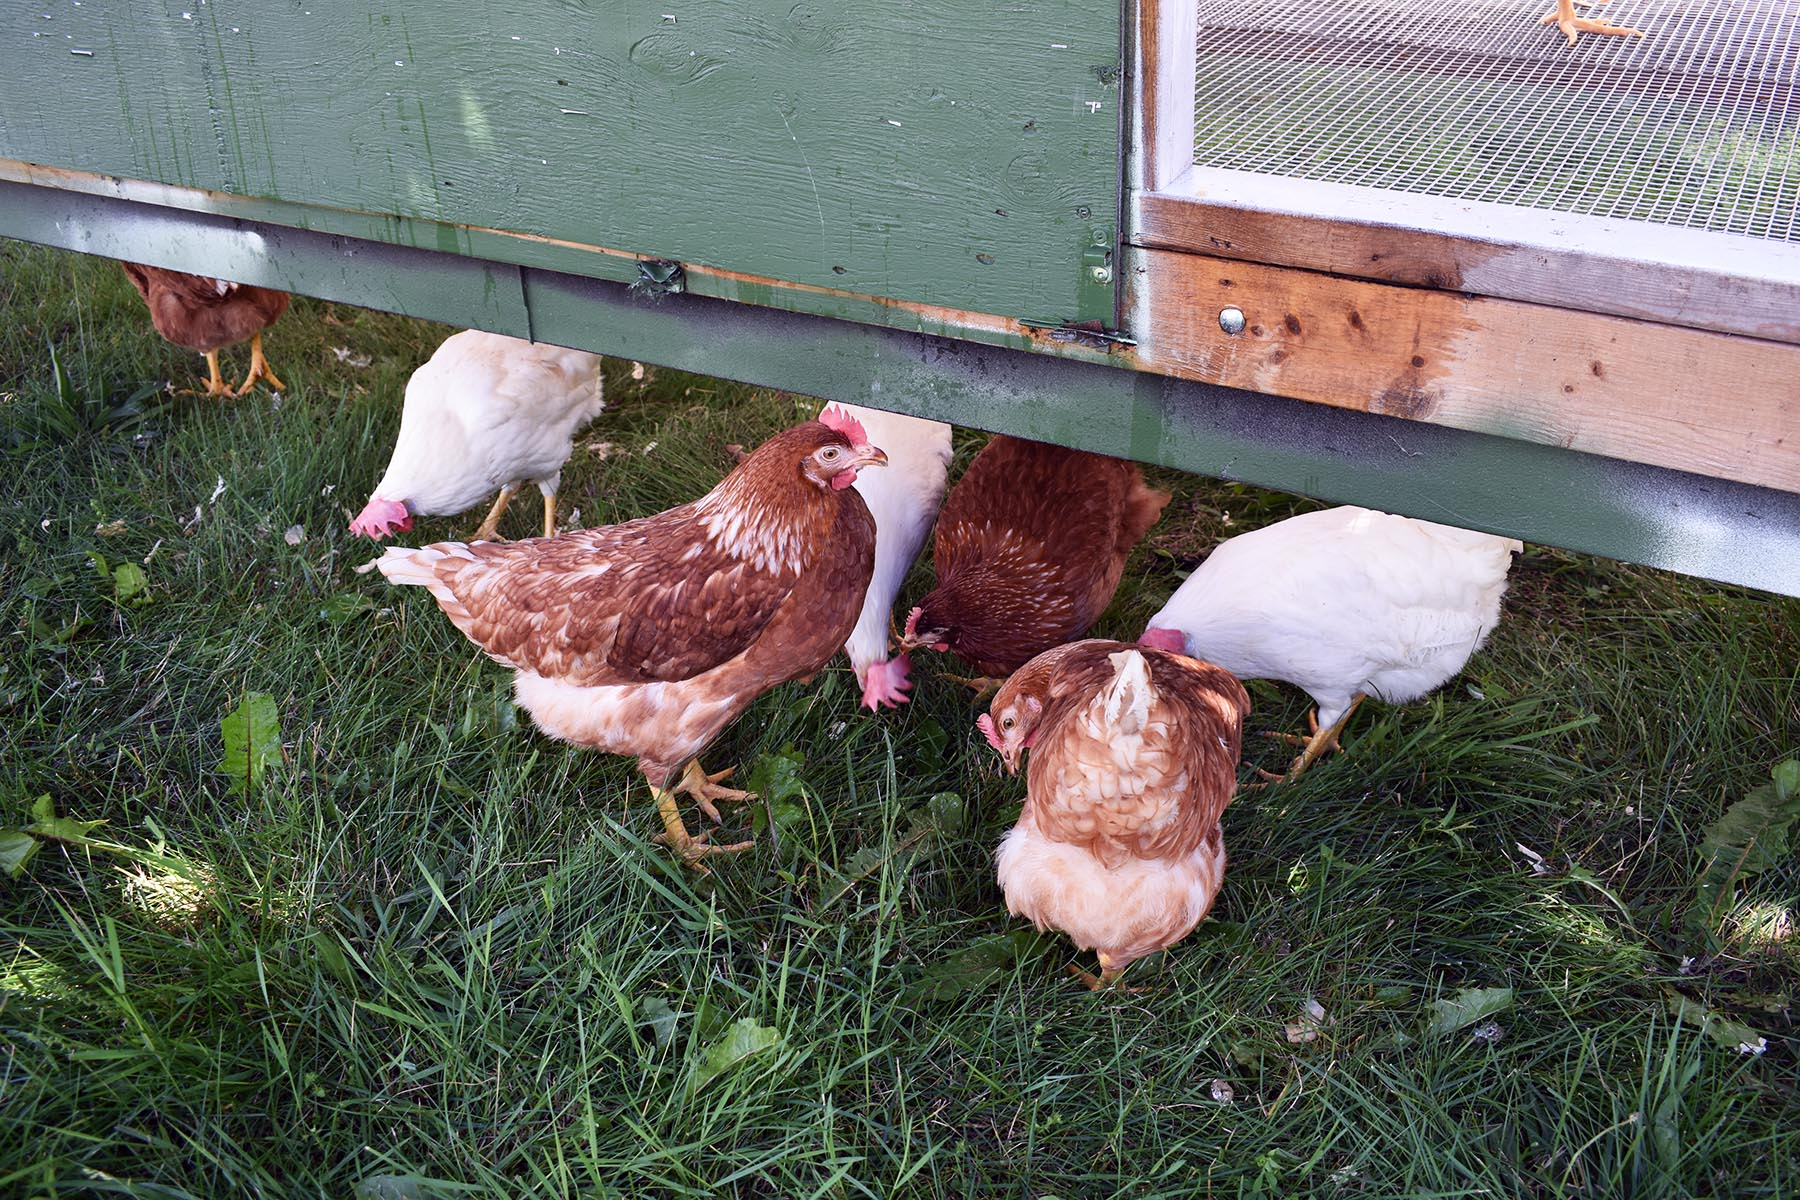 Your Farms Free Range Chickens